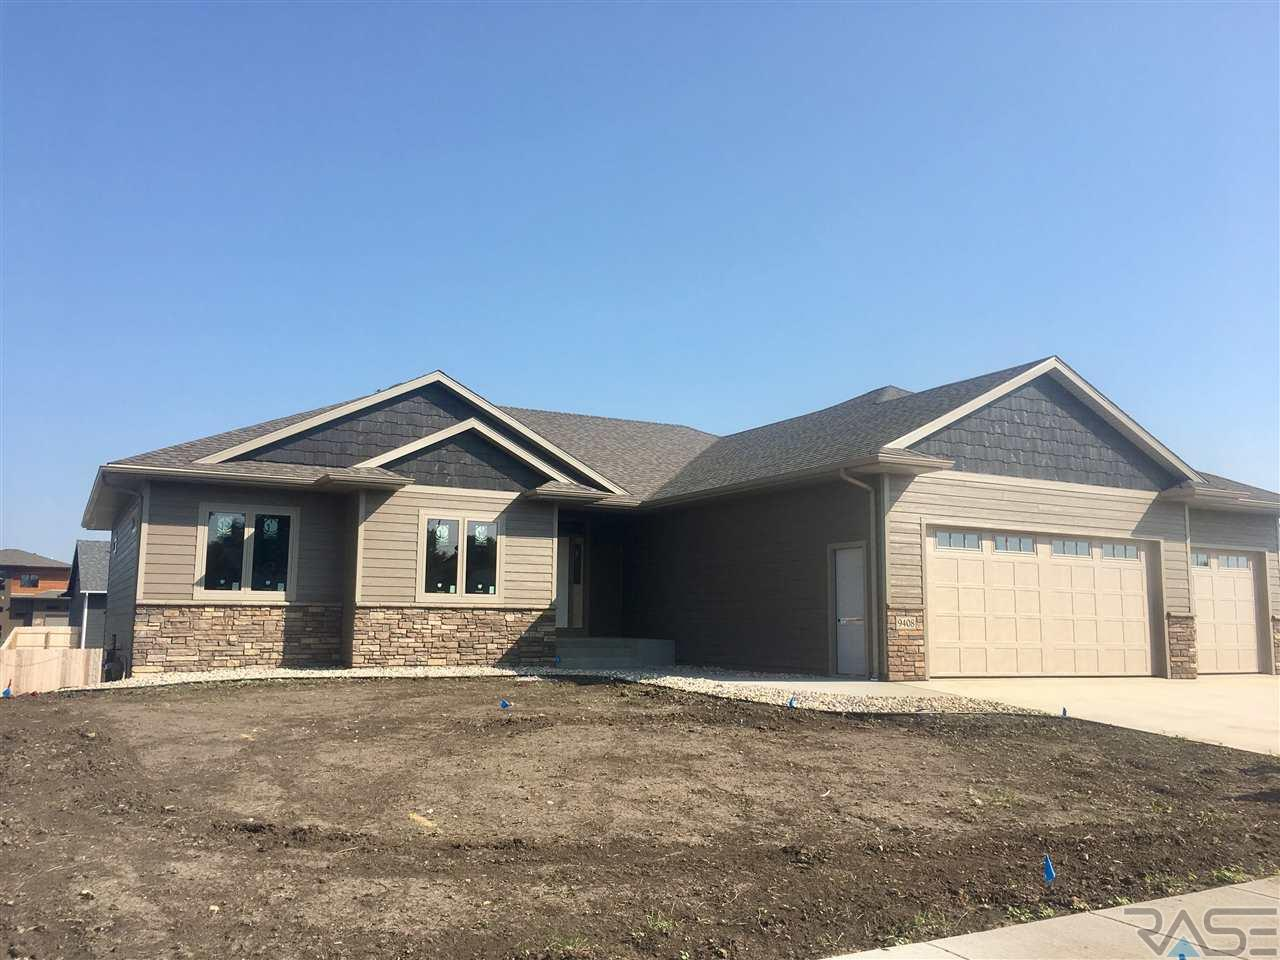 9408 W Kingfisher Dr, Sioux Falls, SD 57107